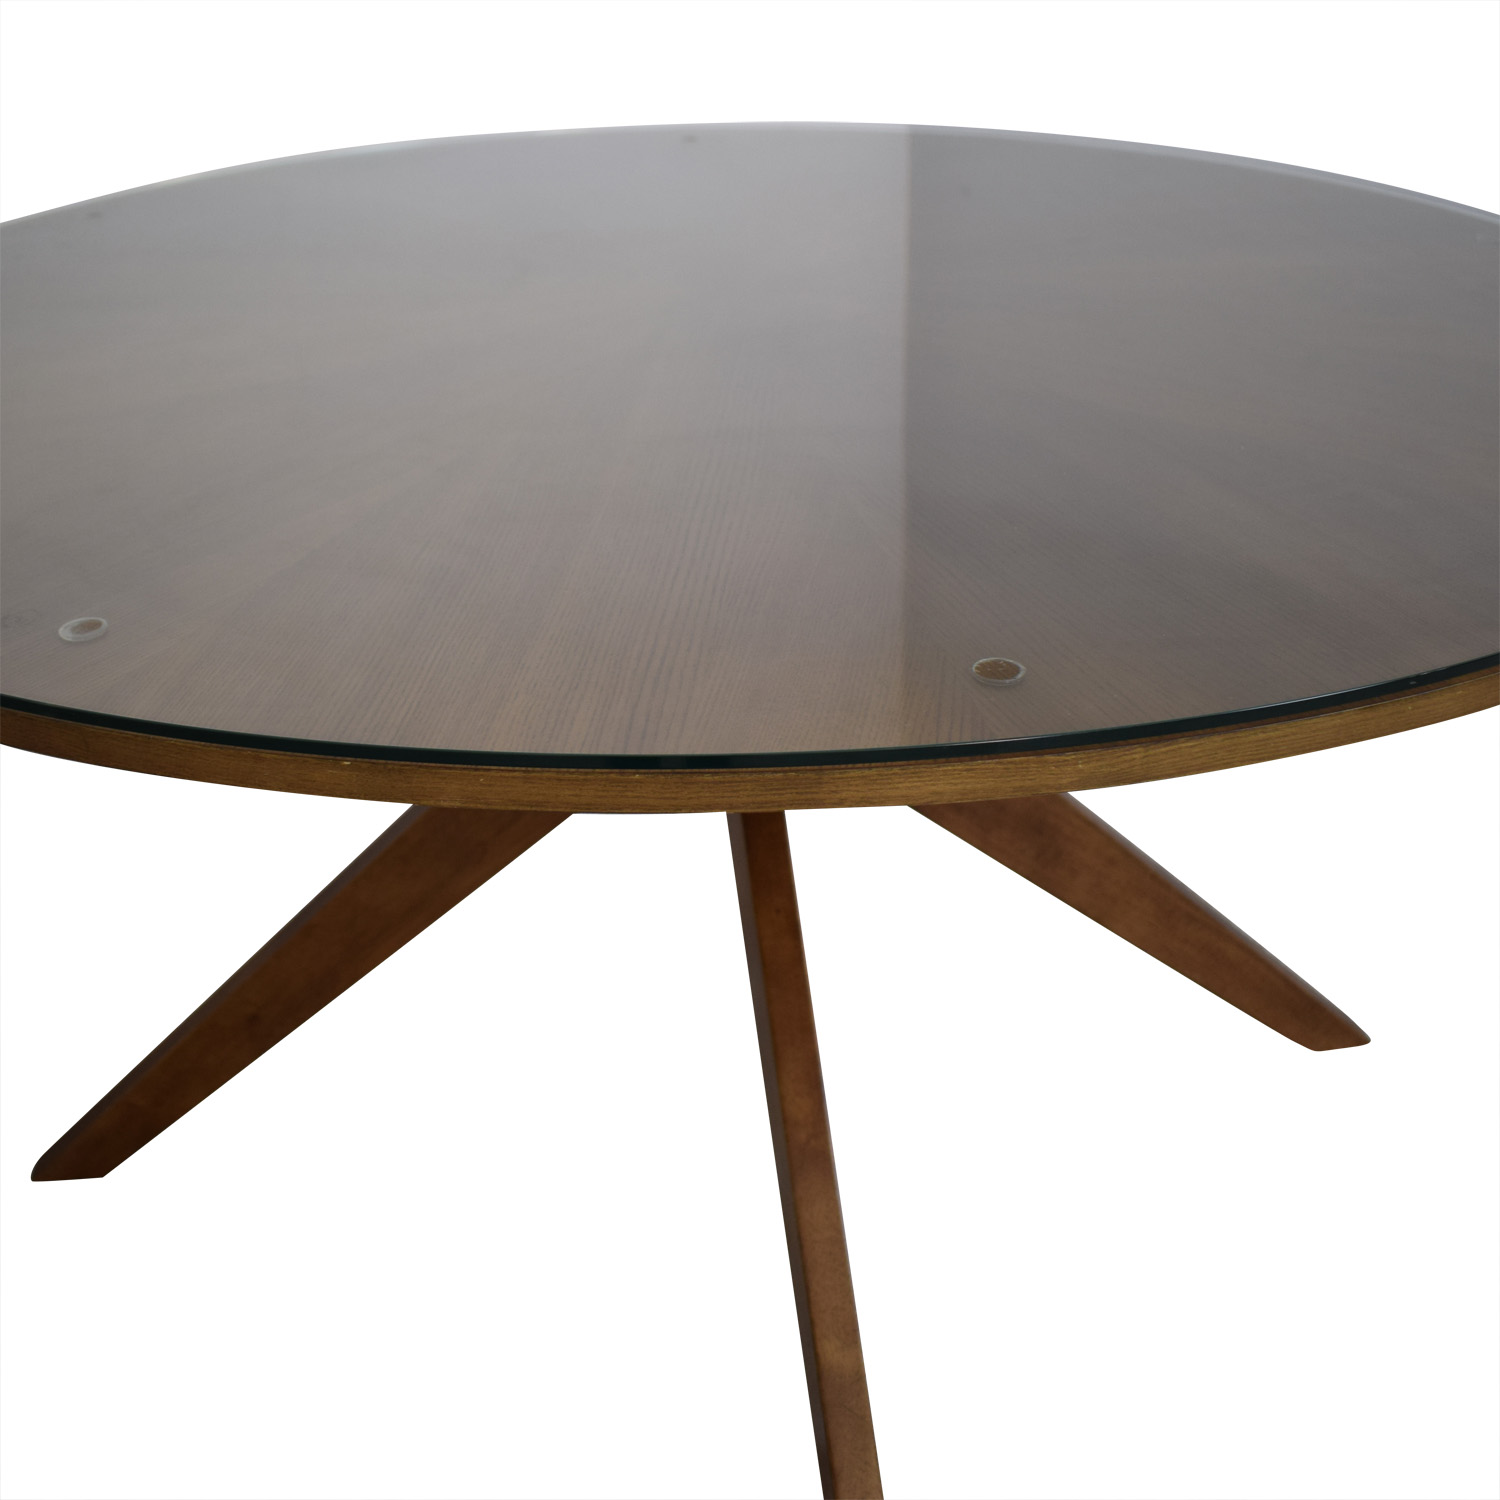 Article Article Midcentury Modern Round Table with Glass Top used